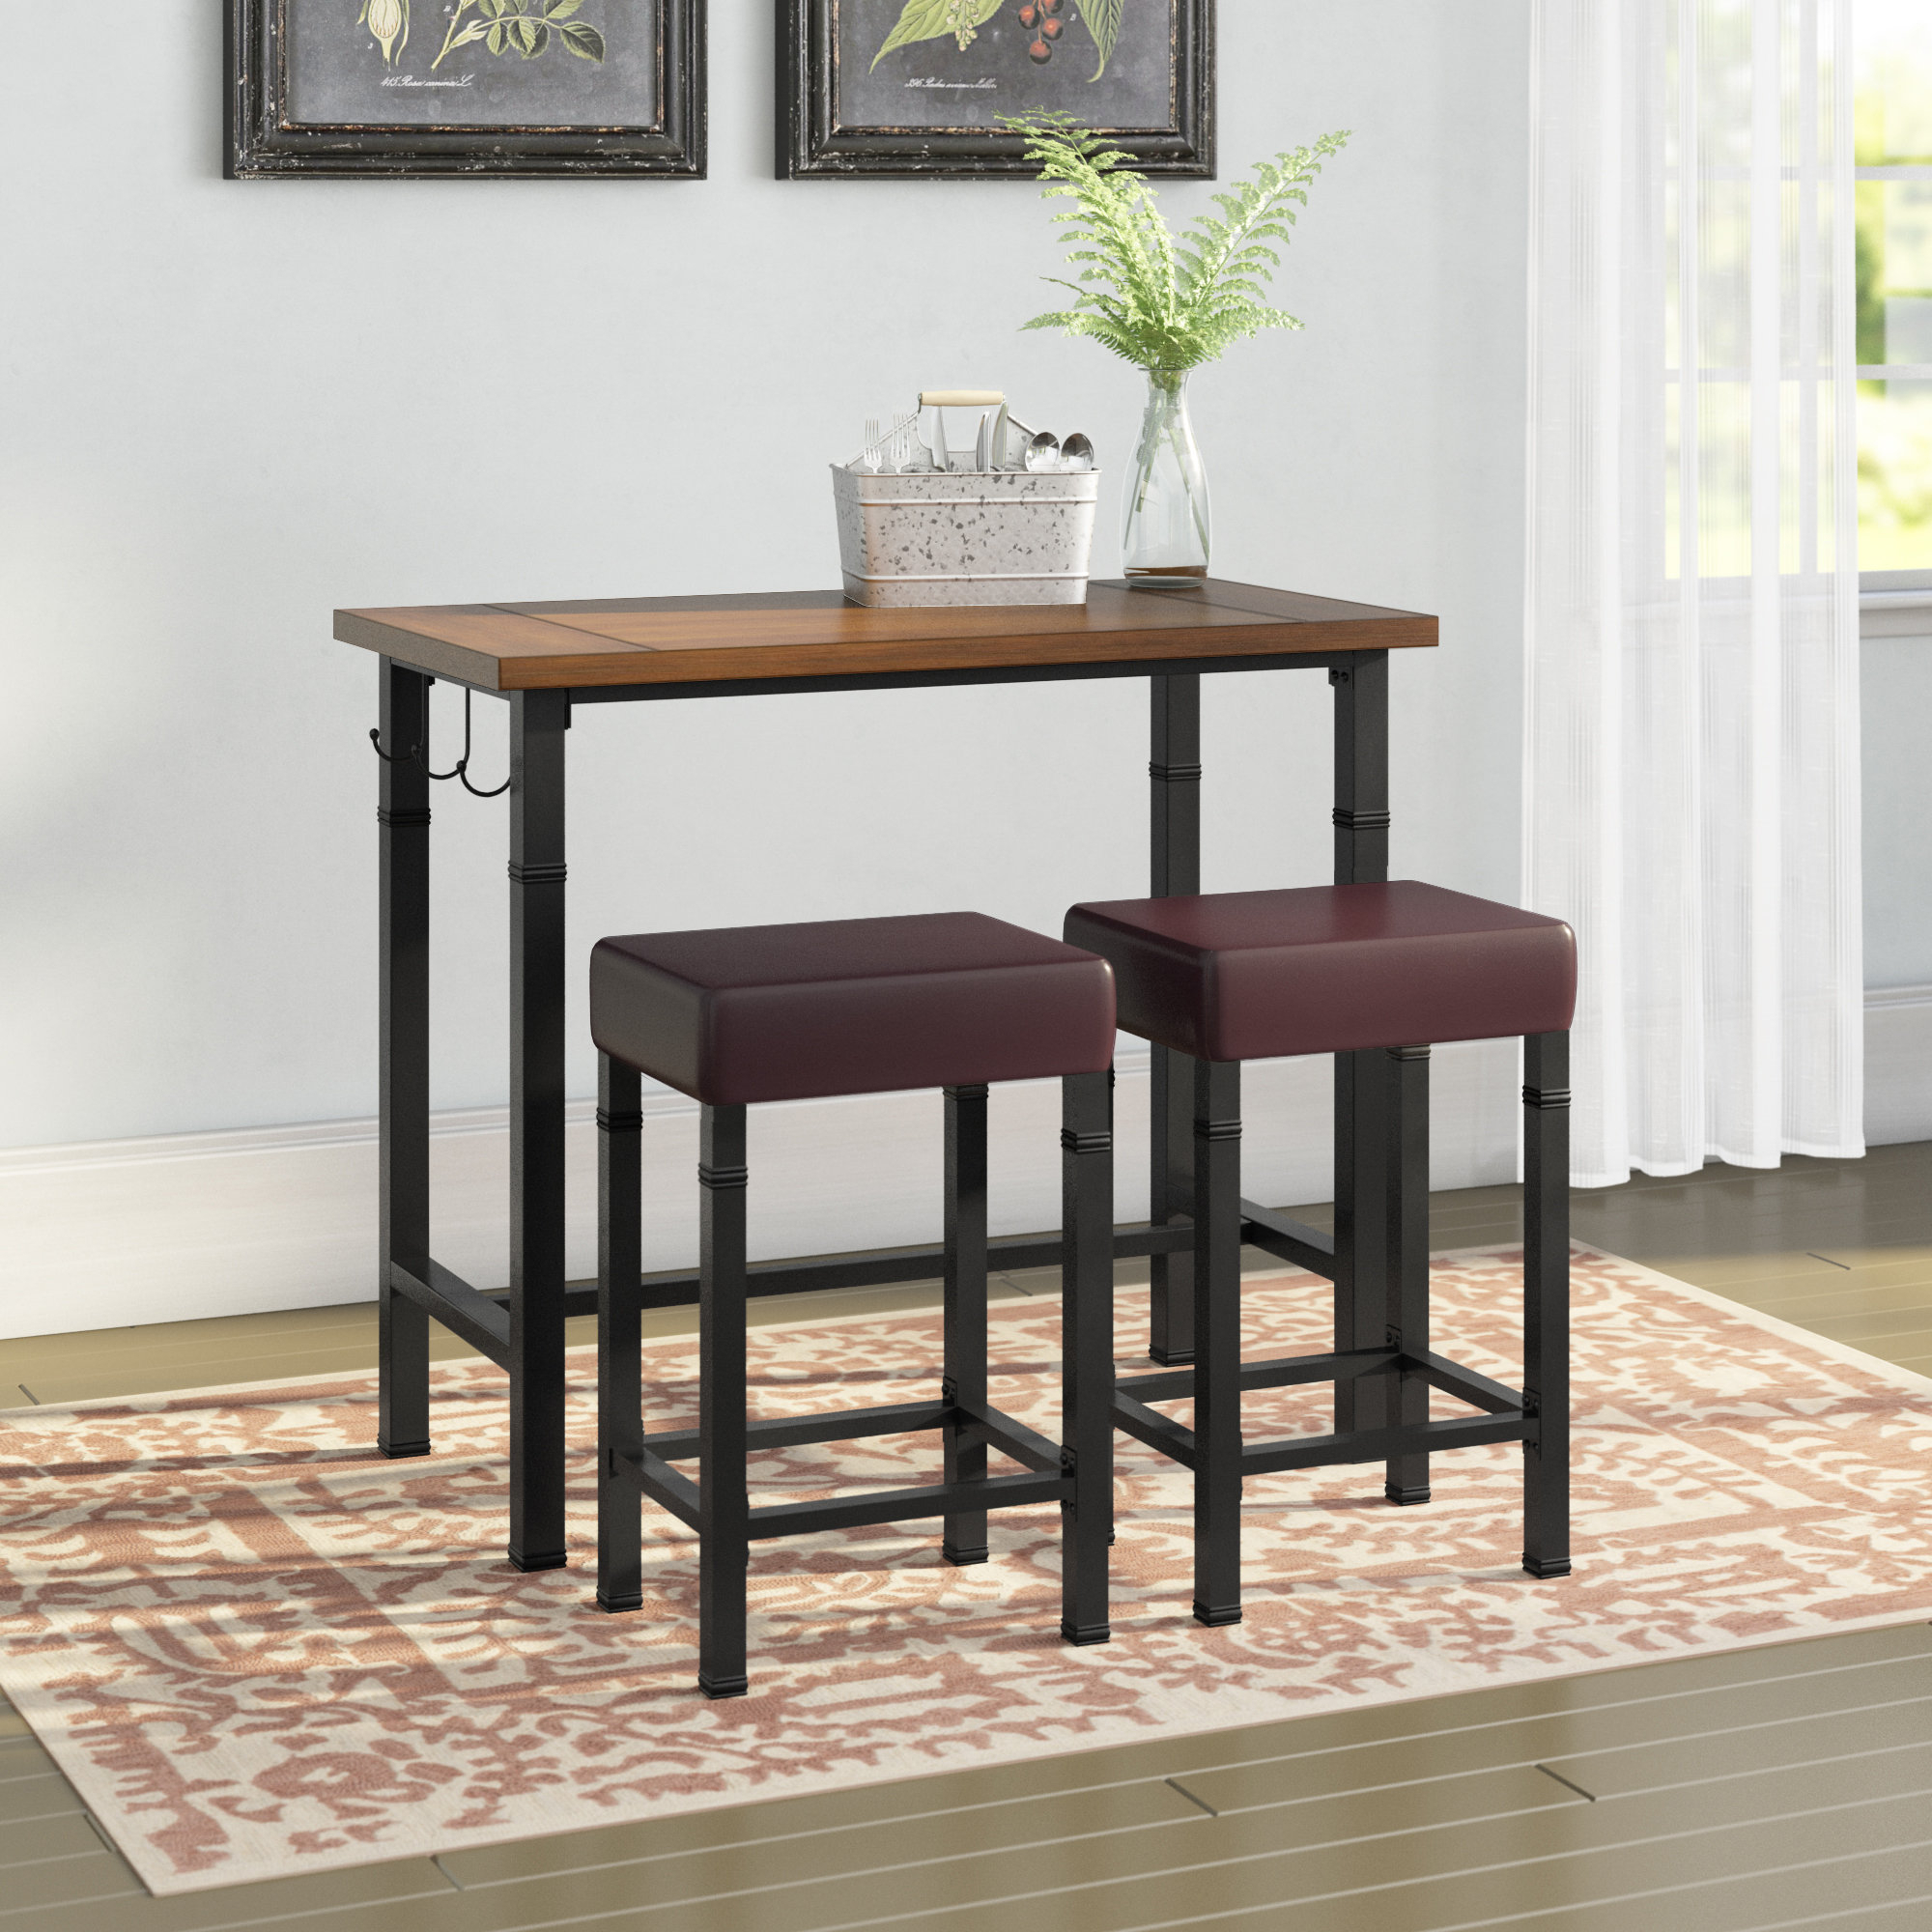 Widely Used Laurel Foundry Modern Farmhouse Sevigny 3 Piece Pub Table Set Pertaining To Lillard 3 Piece Breakfast Nook Dining Sets (View 6 of 20)